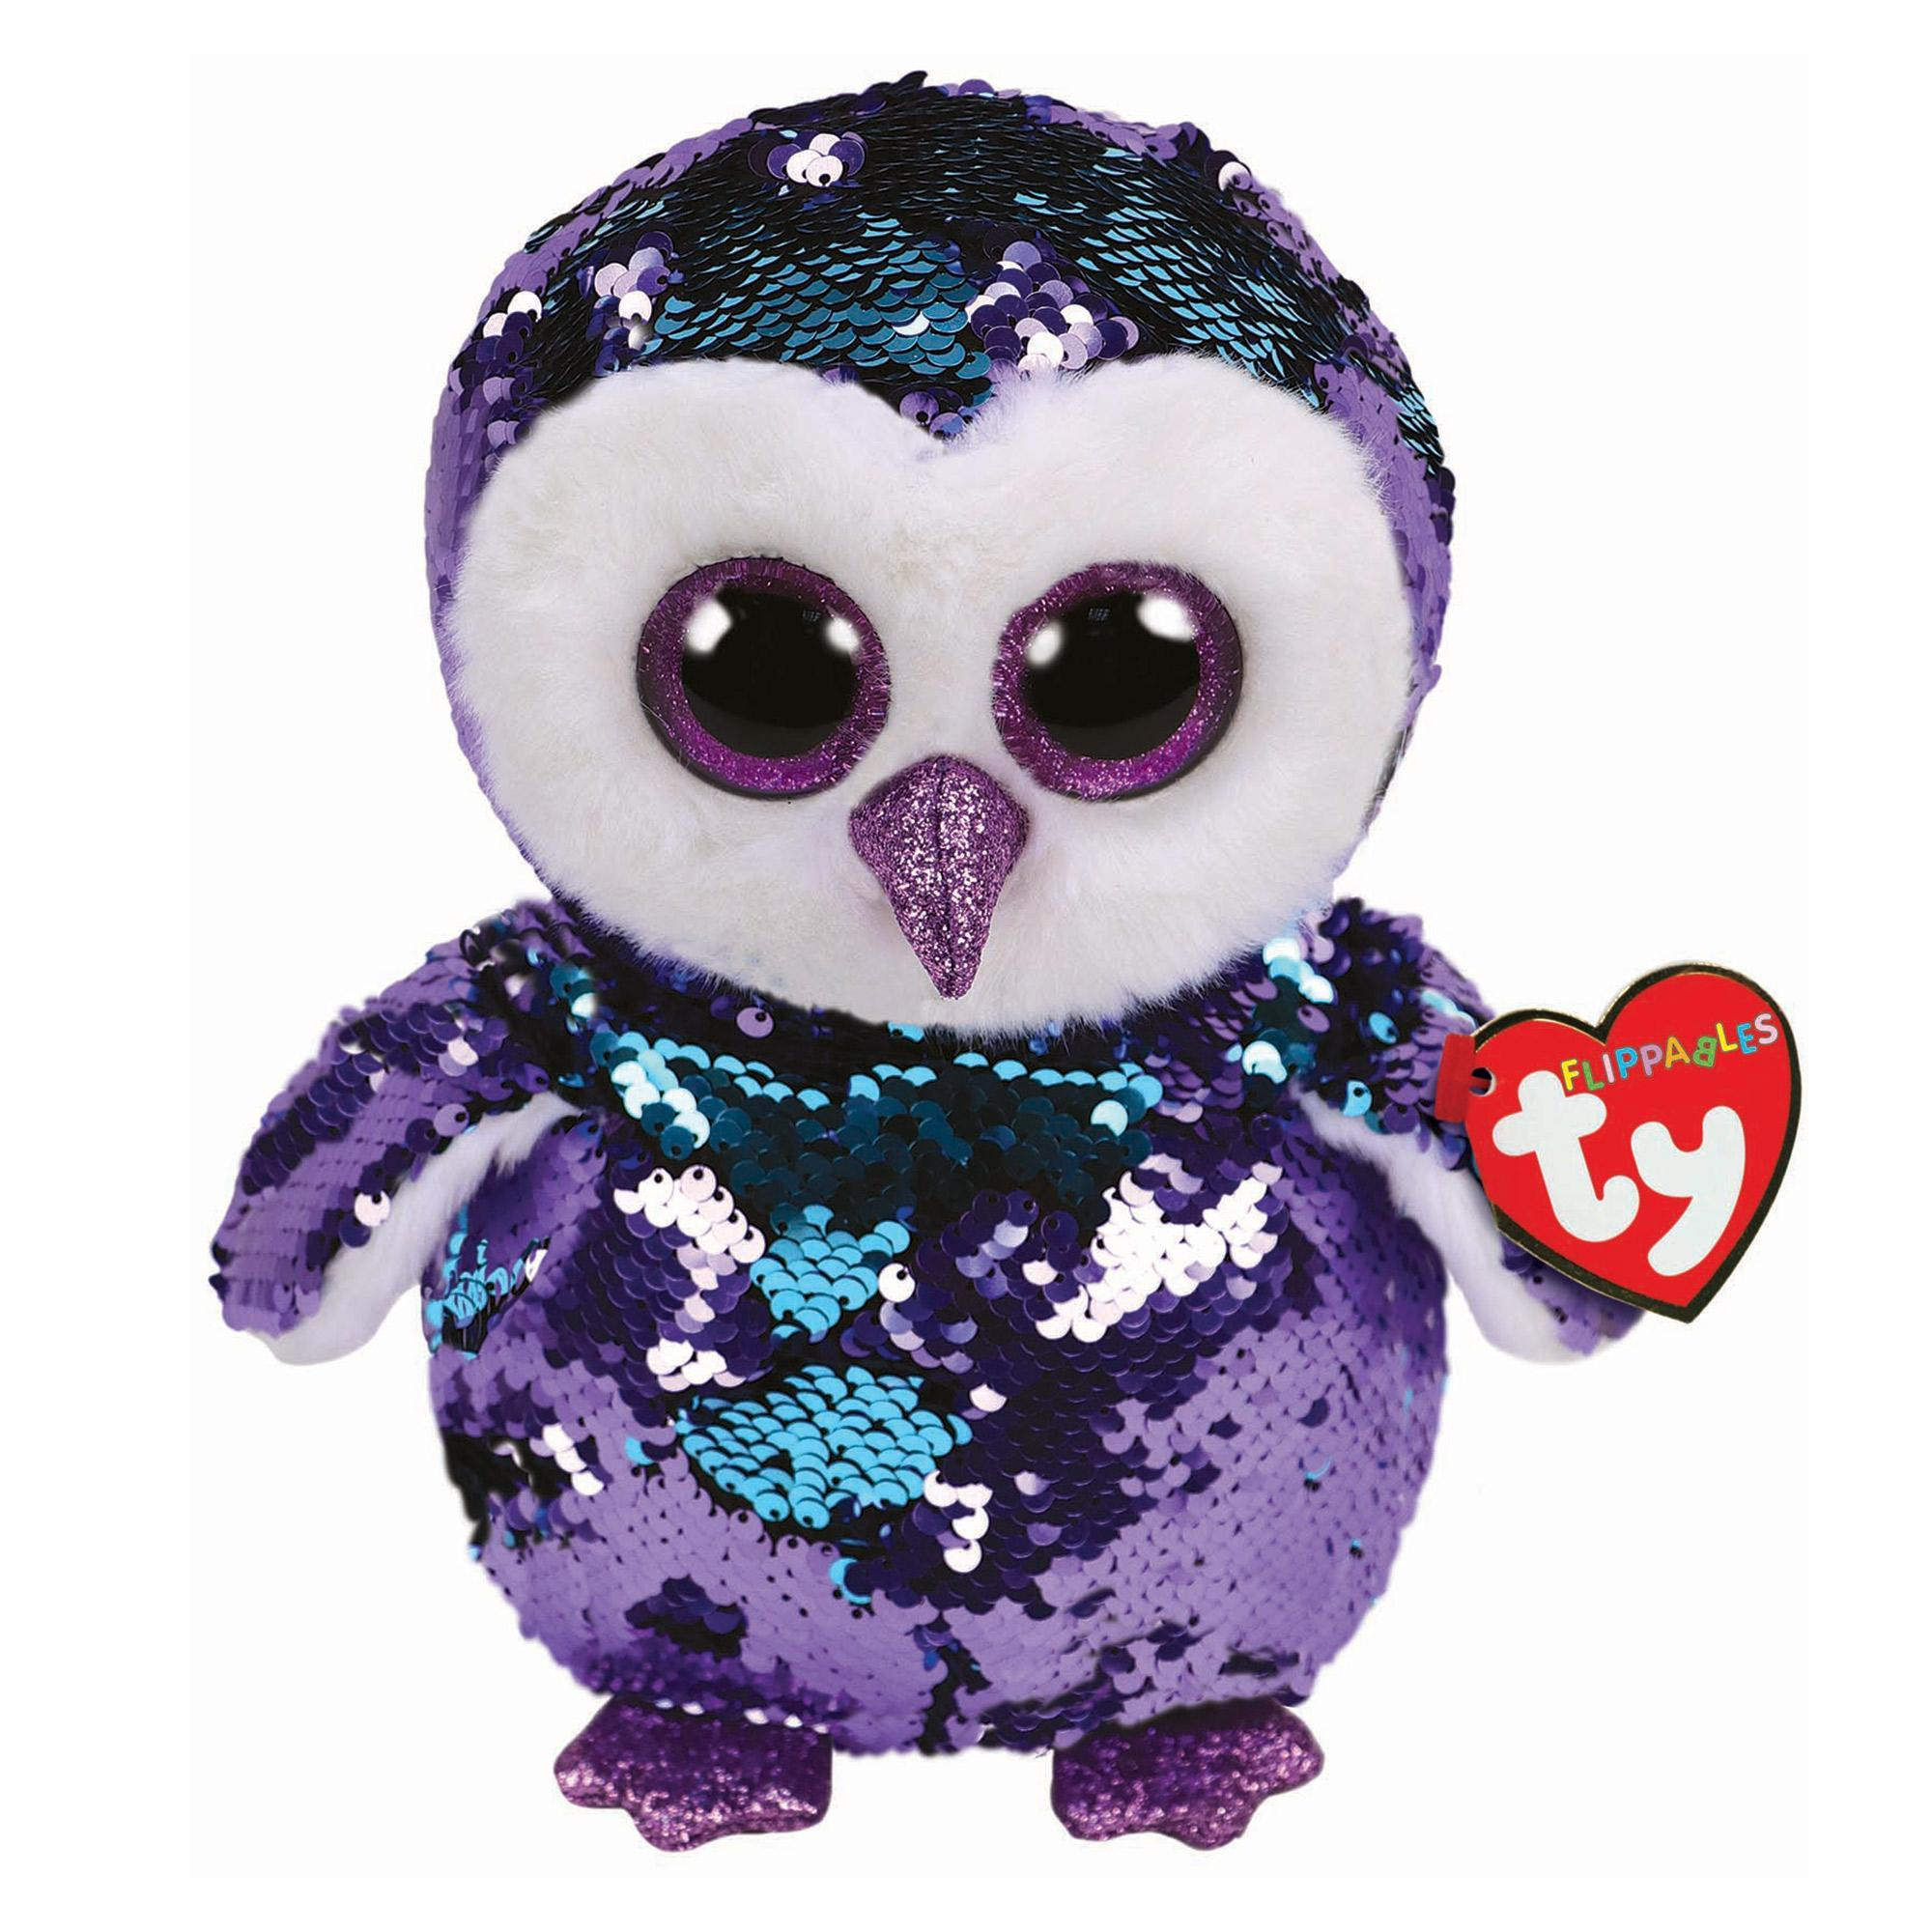 Beanie Boo Sequins - Medium - Moonlight Owl-Yarrawonga Fun and Games.